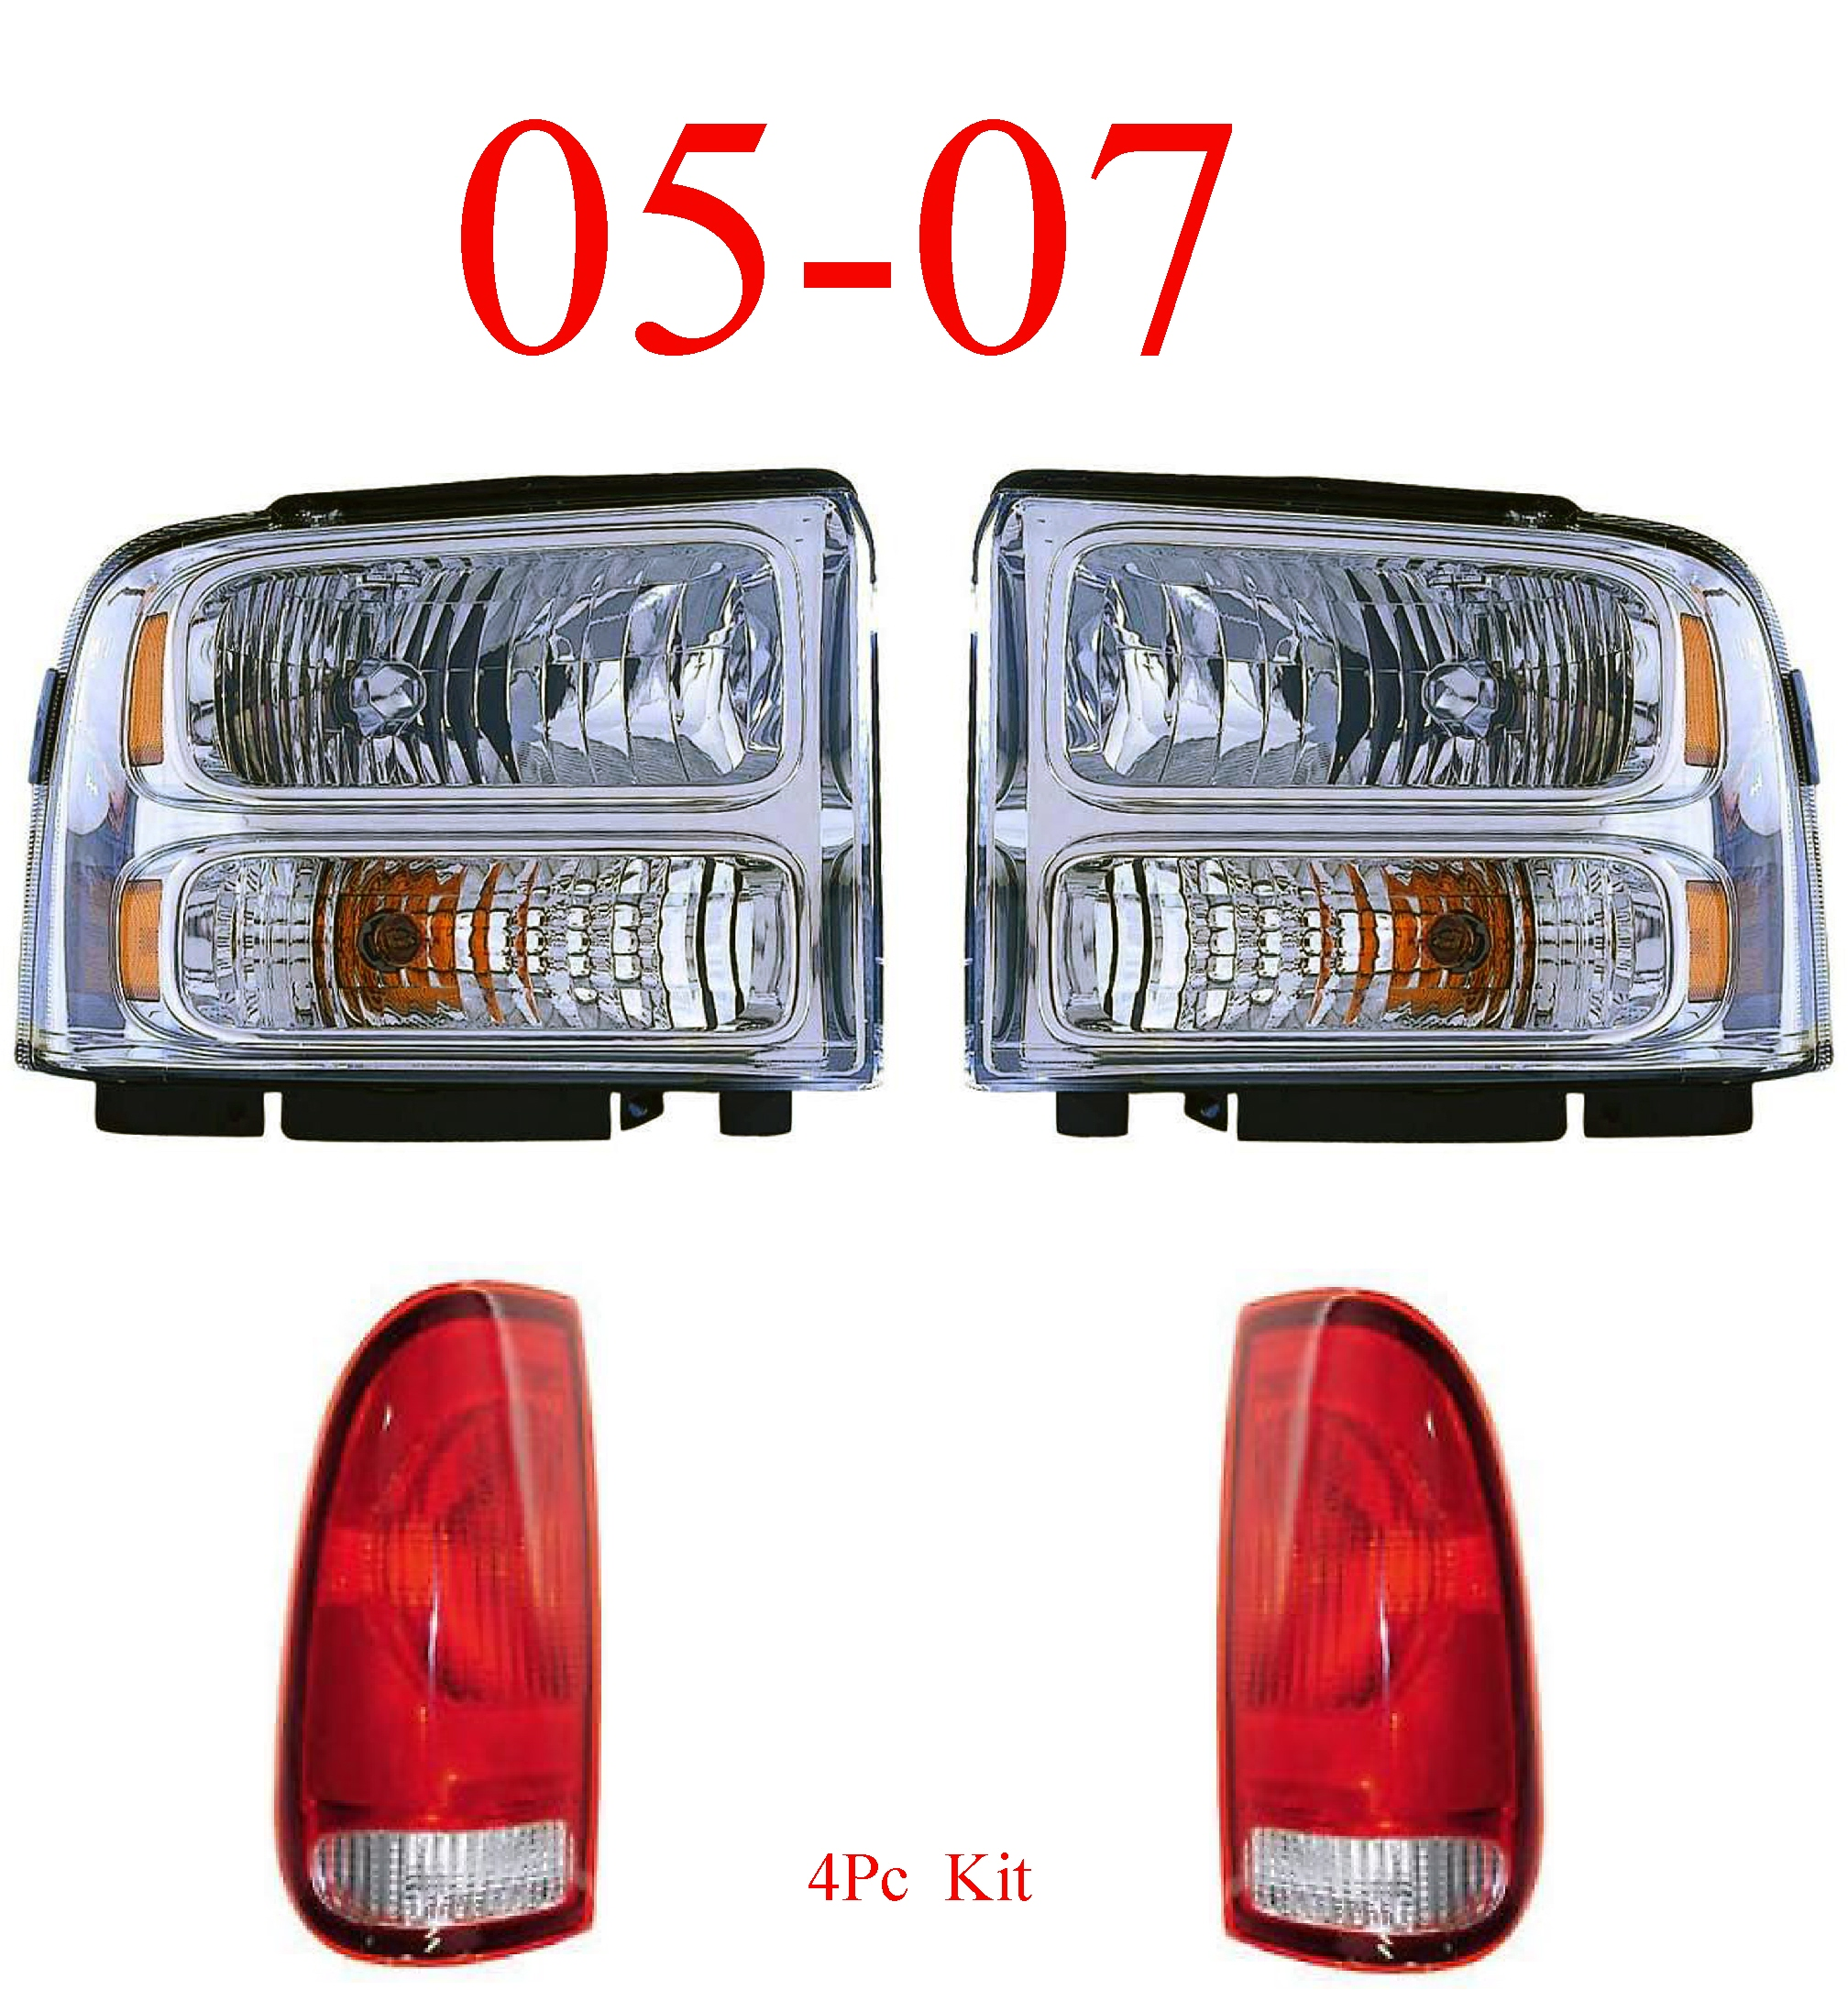 05-07 Ford Super Duty 4Pc Head & Tail Light Kit Chrome